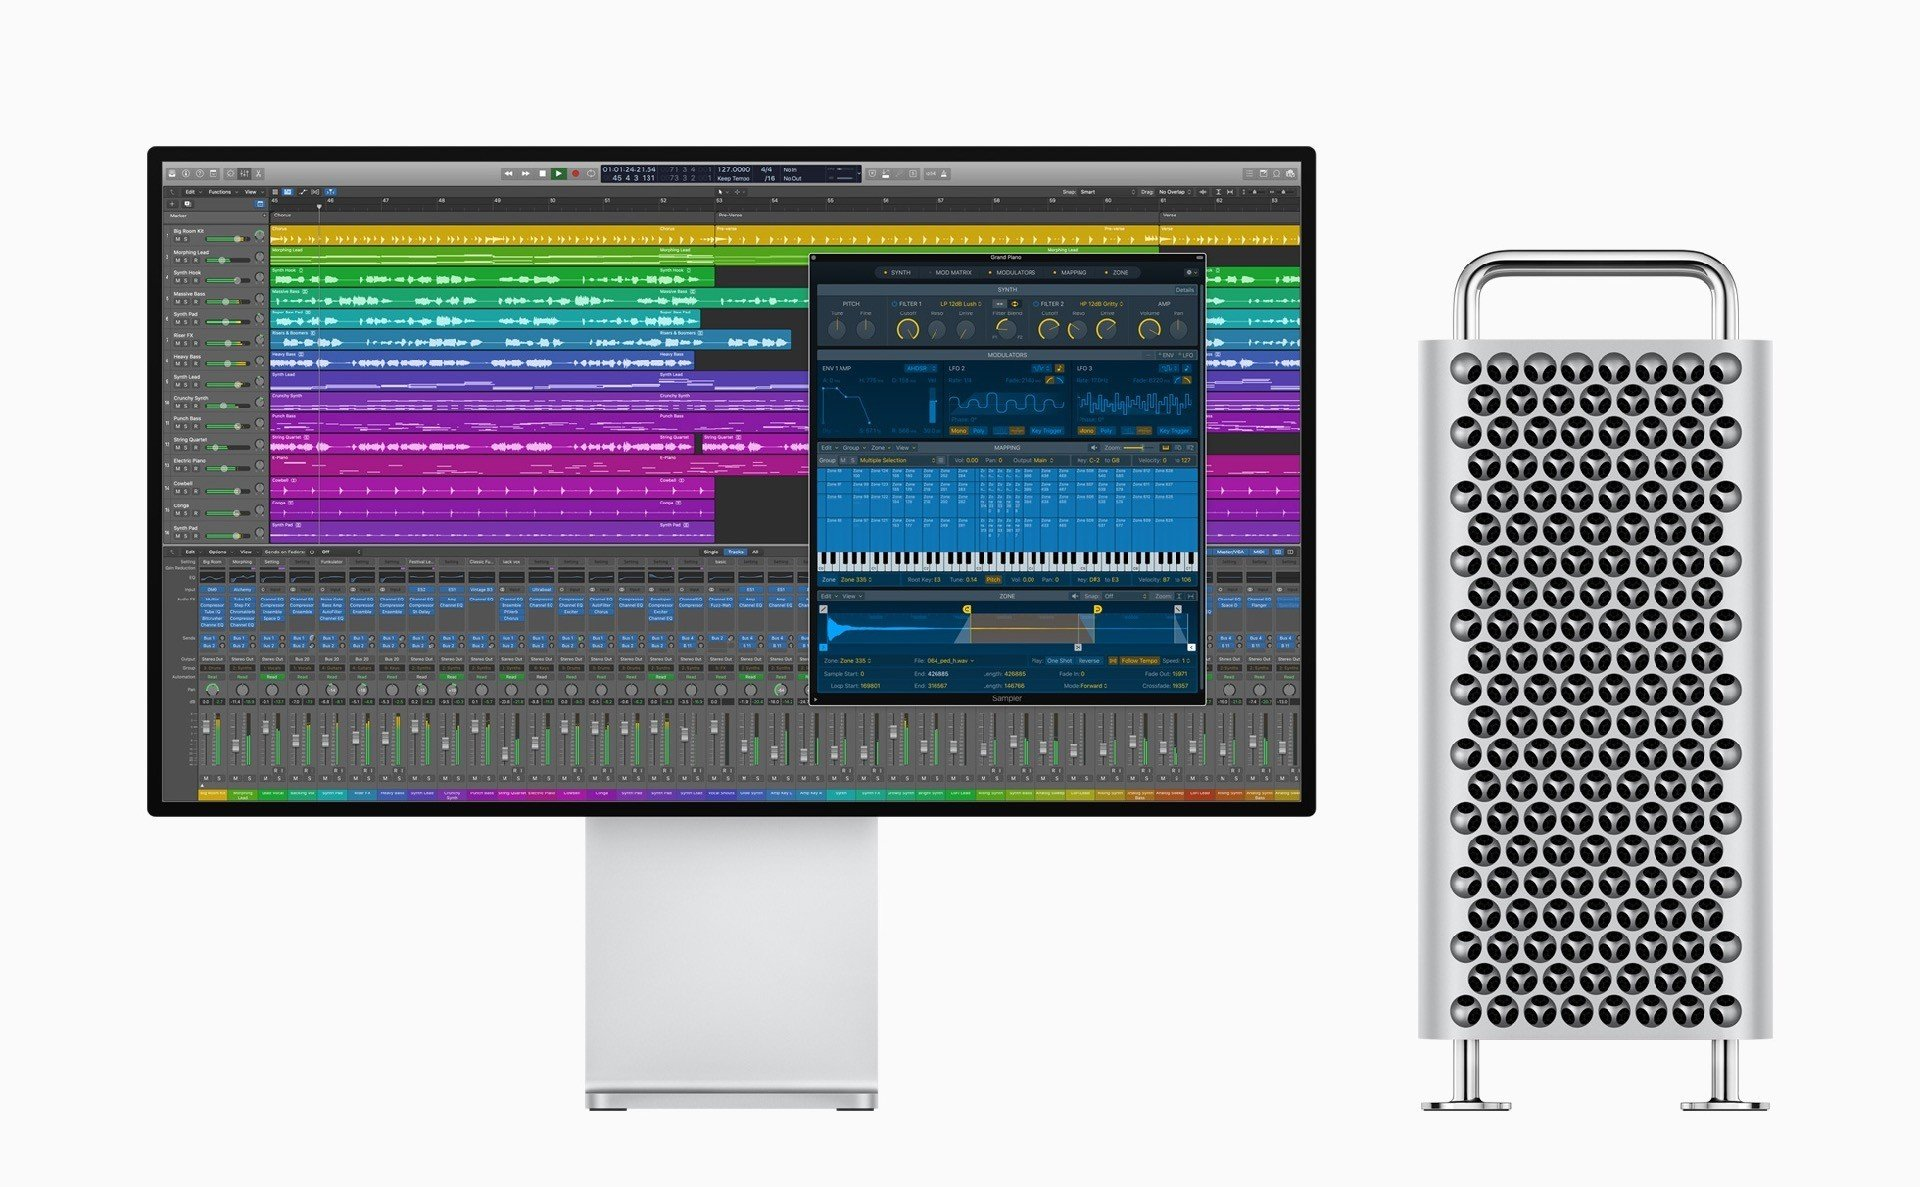 Logic pro X 10.5 Optimized performance